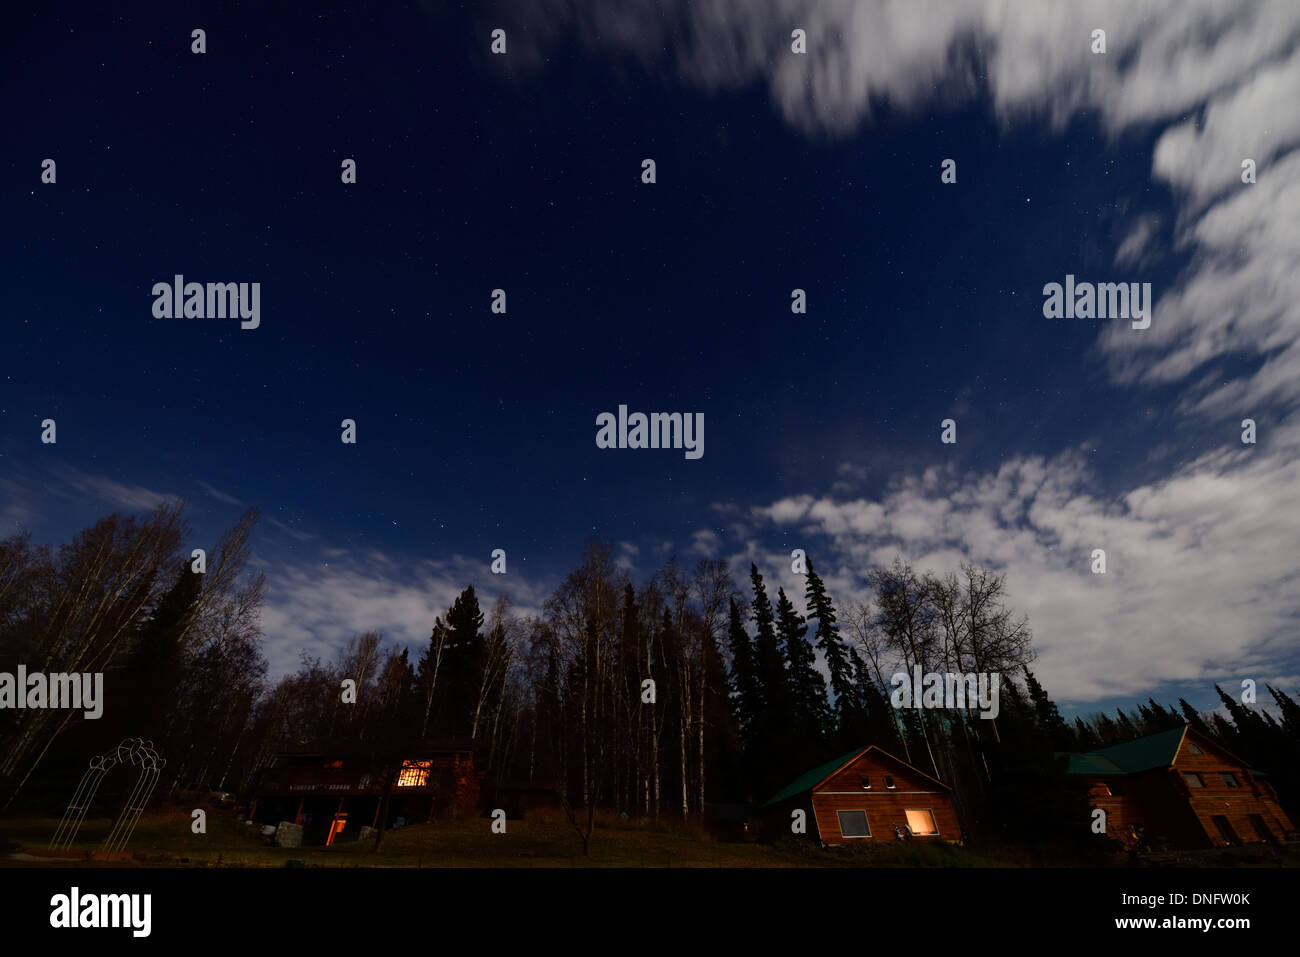 Night sky with stars at full moon over cabins at Fox Alaska USA in the Fall - Stock Image